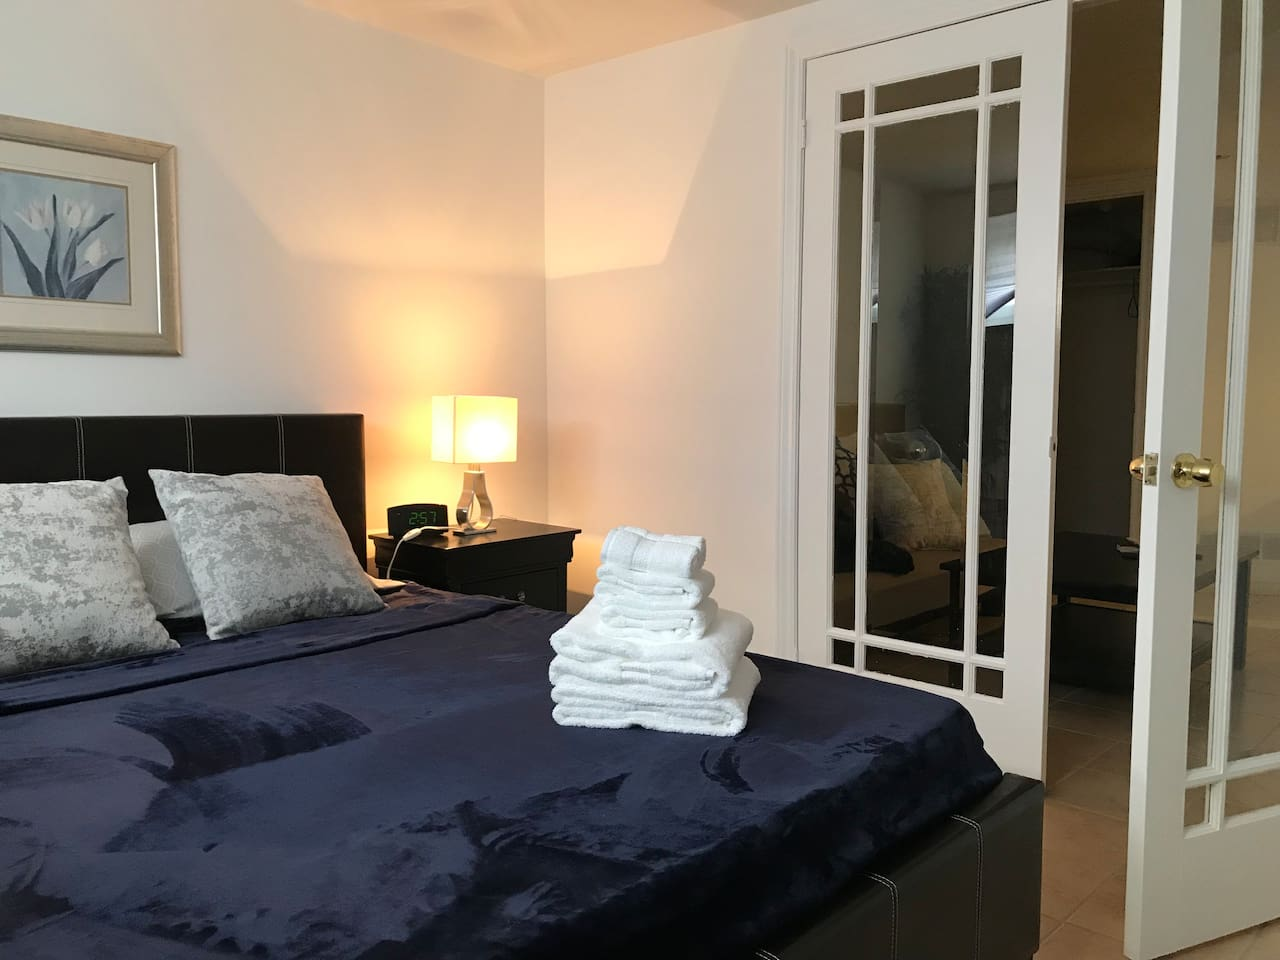 Queen size bed in separate bedroom with French doors